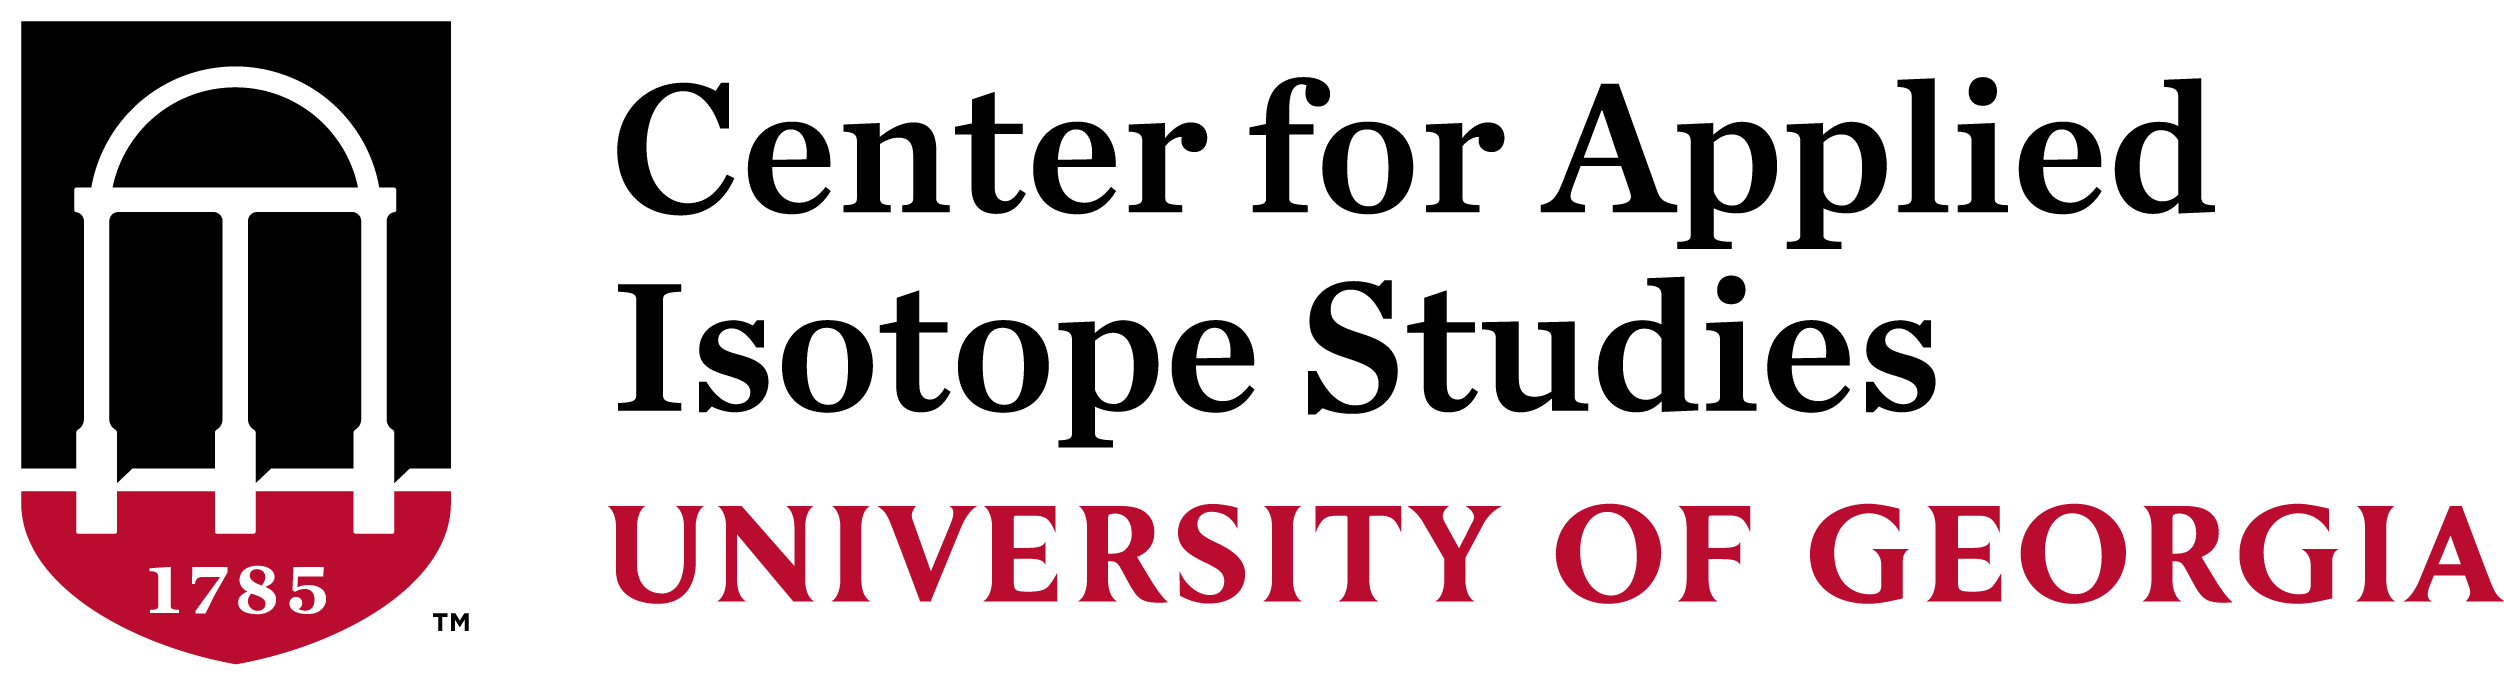 Center for Applied Isotope Studies